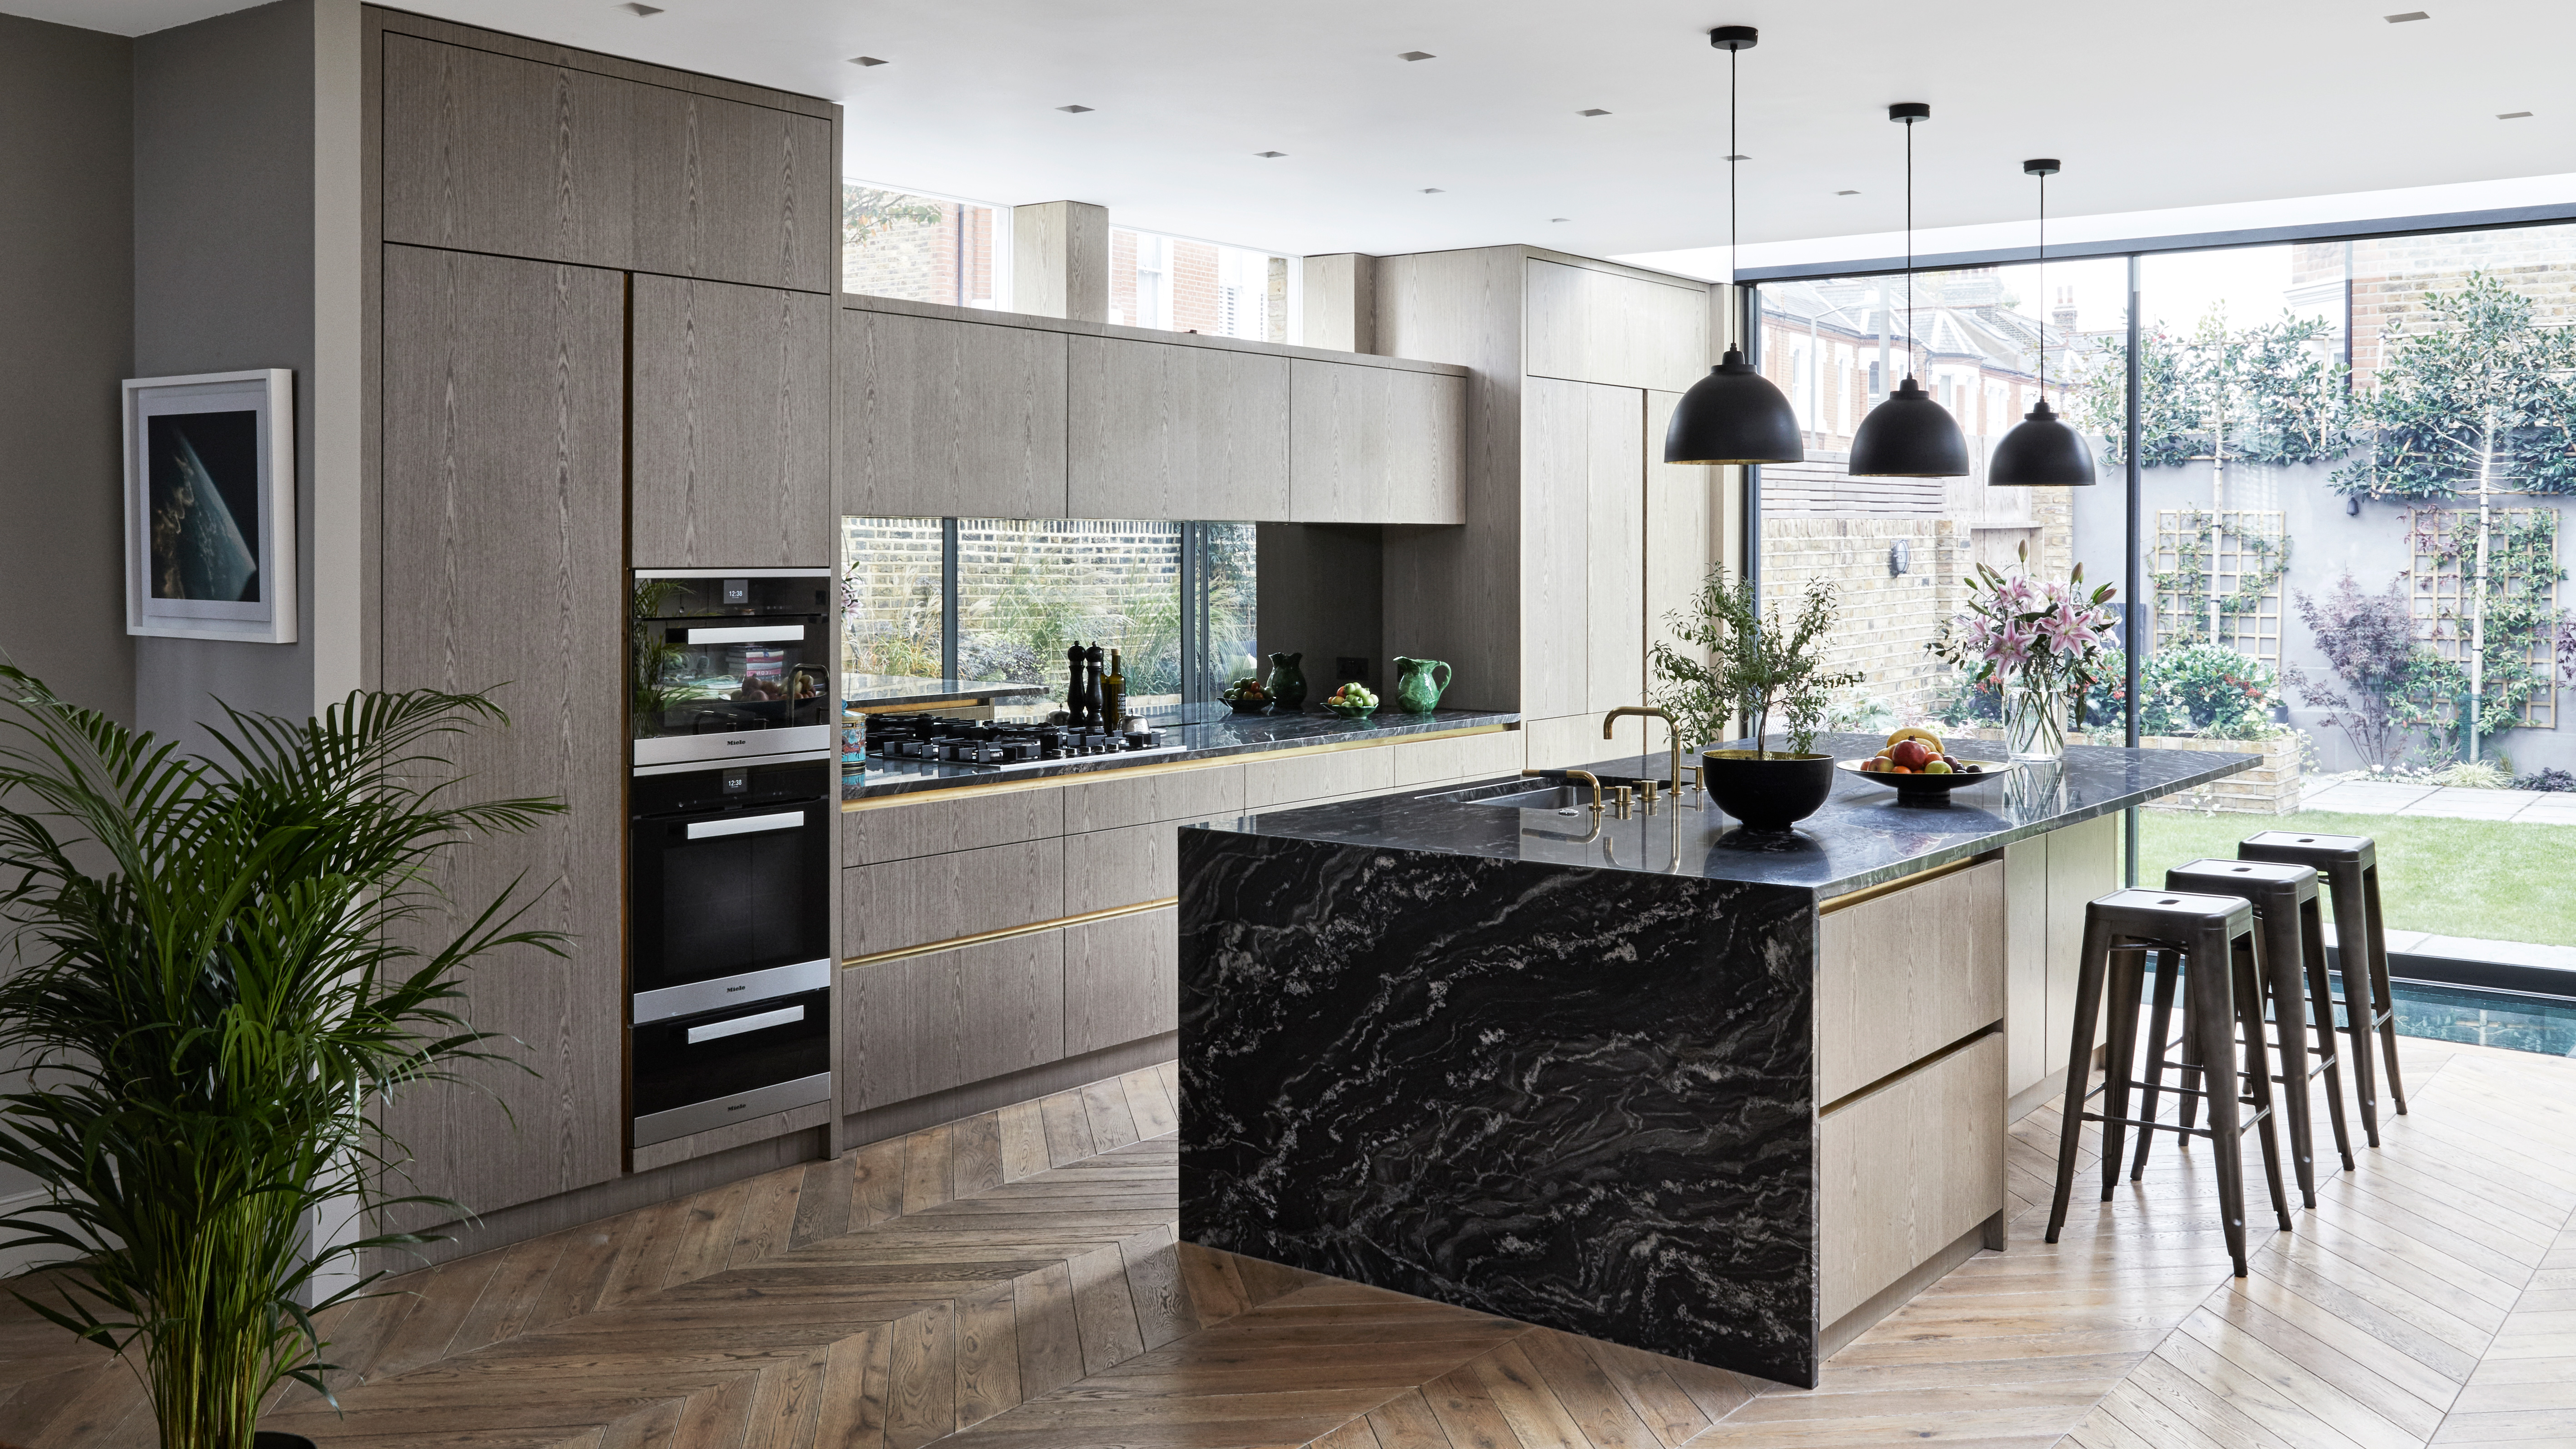 Kitchen Cabinet Ideas The Materials Styles And Trends To Know Homes Gardens